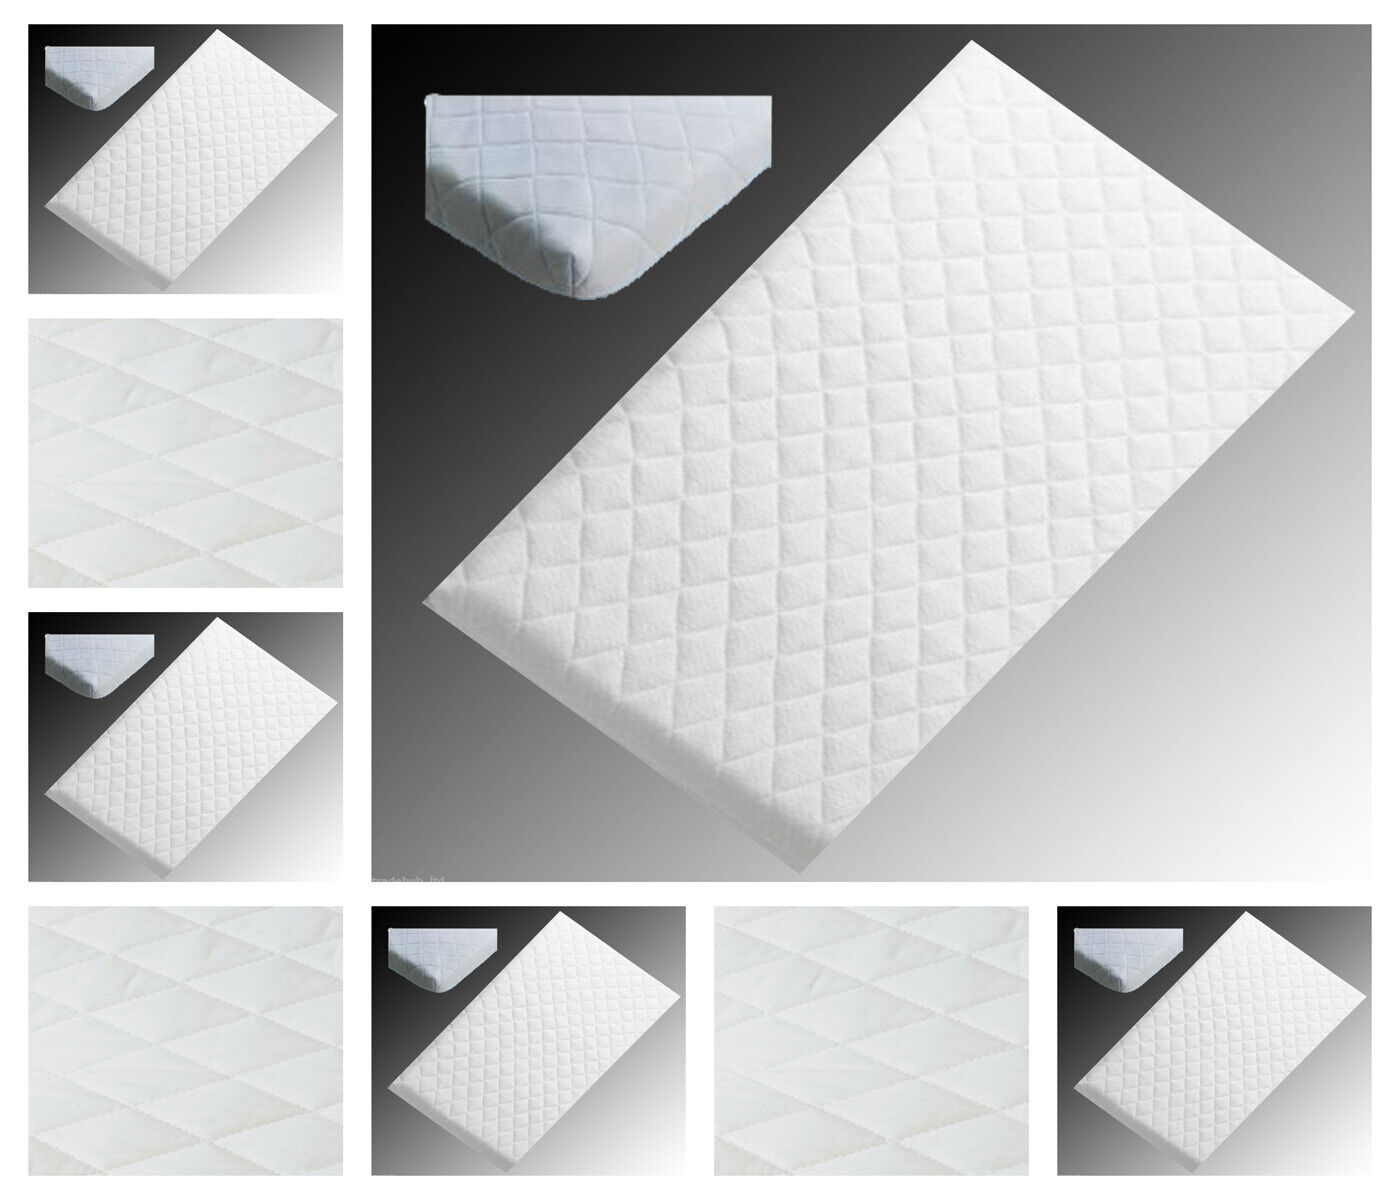 87 X 40 X 4 cm Baby Toddler COT Crib Bed Breathable Quilted and Waterproof Foam Mattress Crib Mattress Nursery Baby Breathable Waterproof Cradle Pram Swing Size